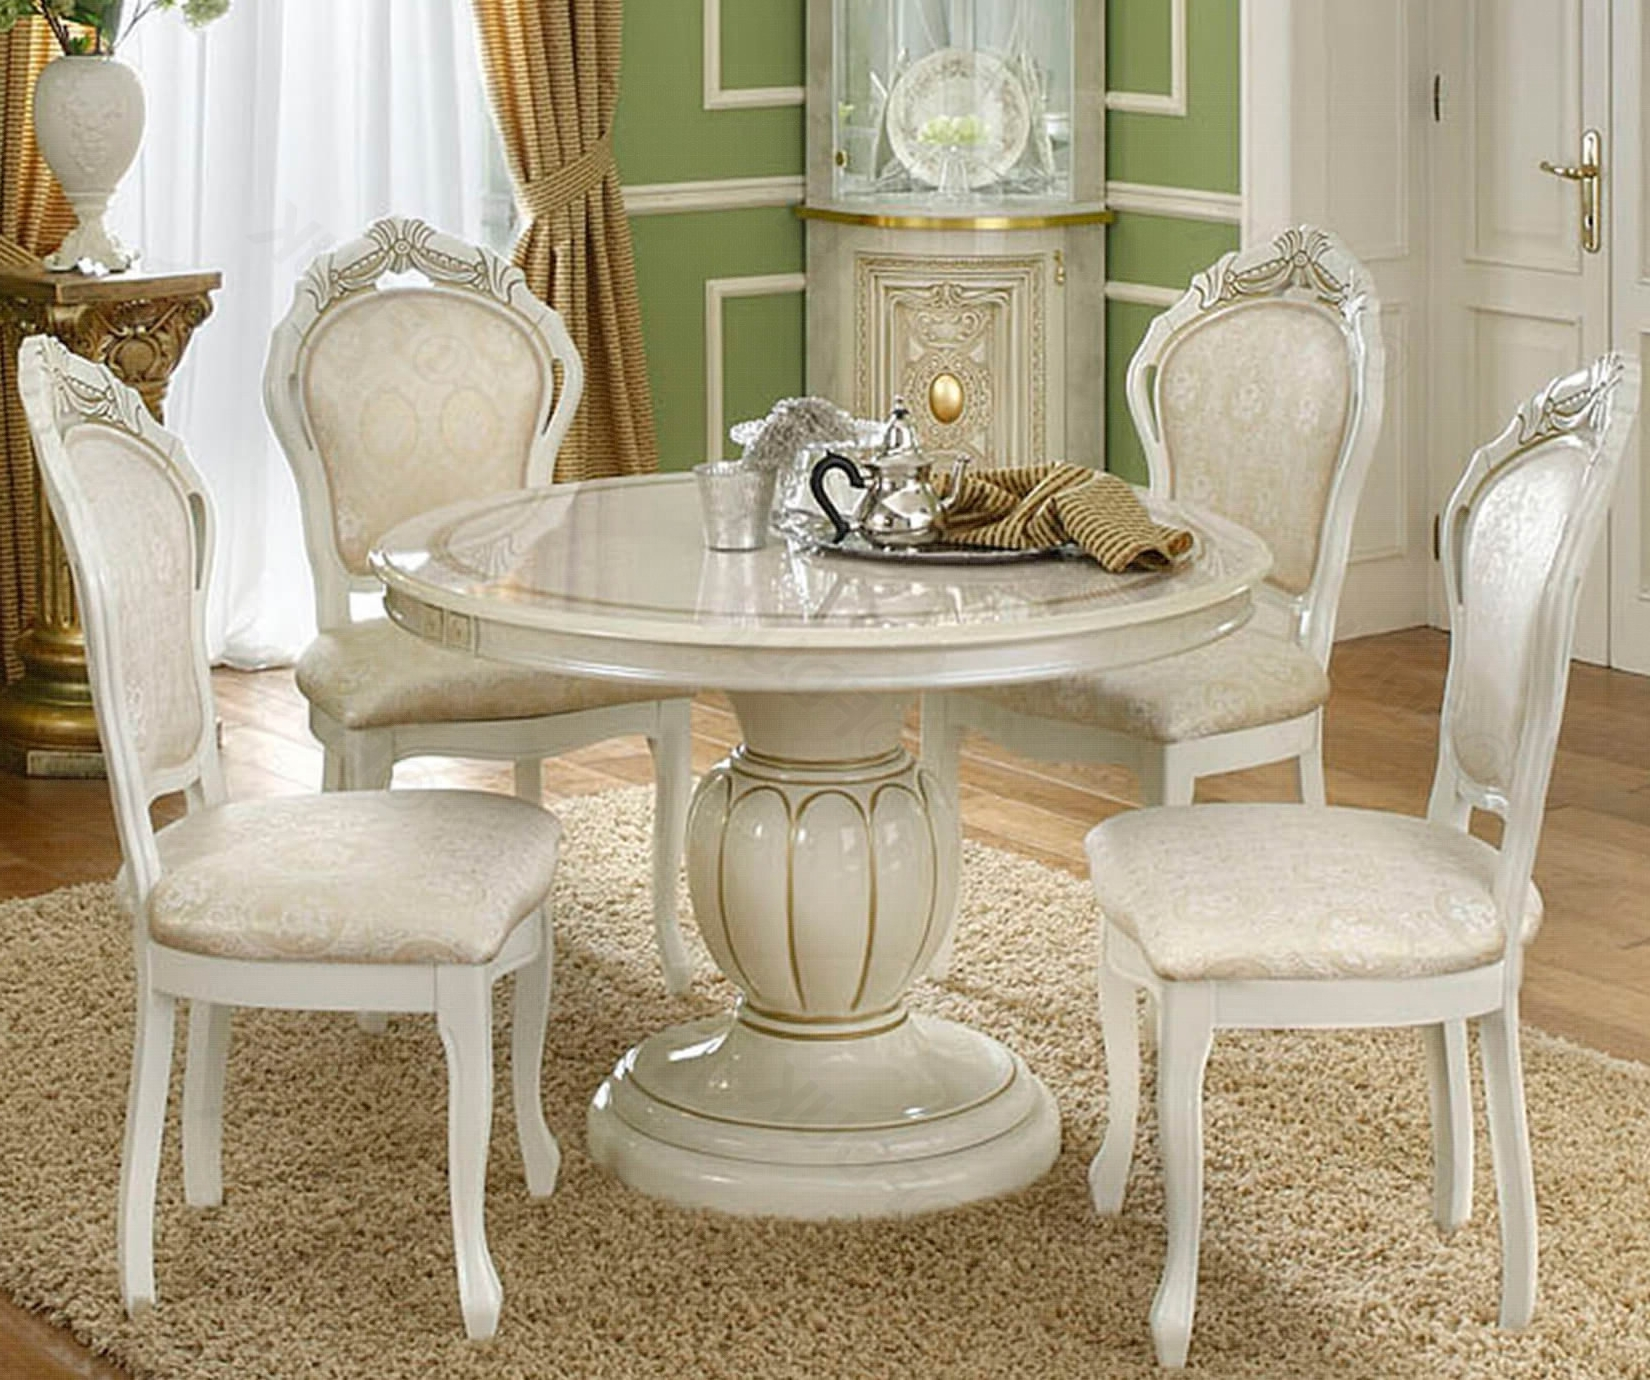 Best And Newest Italian Dining Tables For Camel Group Leonardo (View 11 of 25)